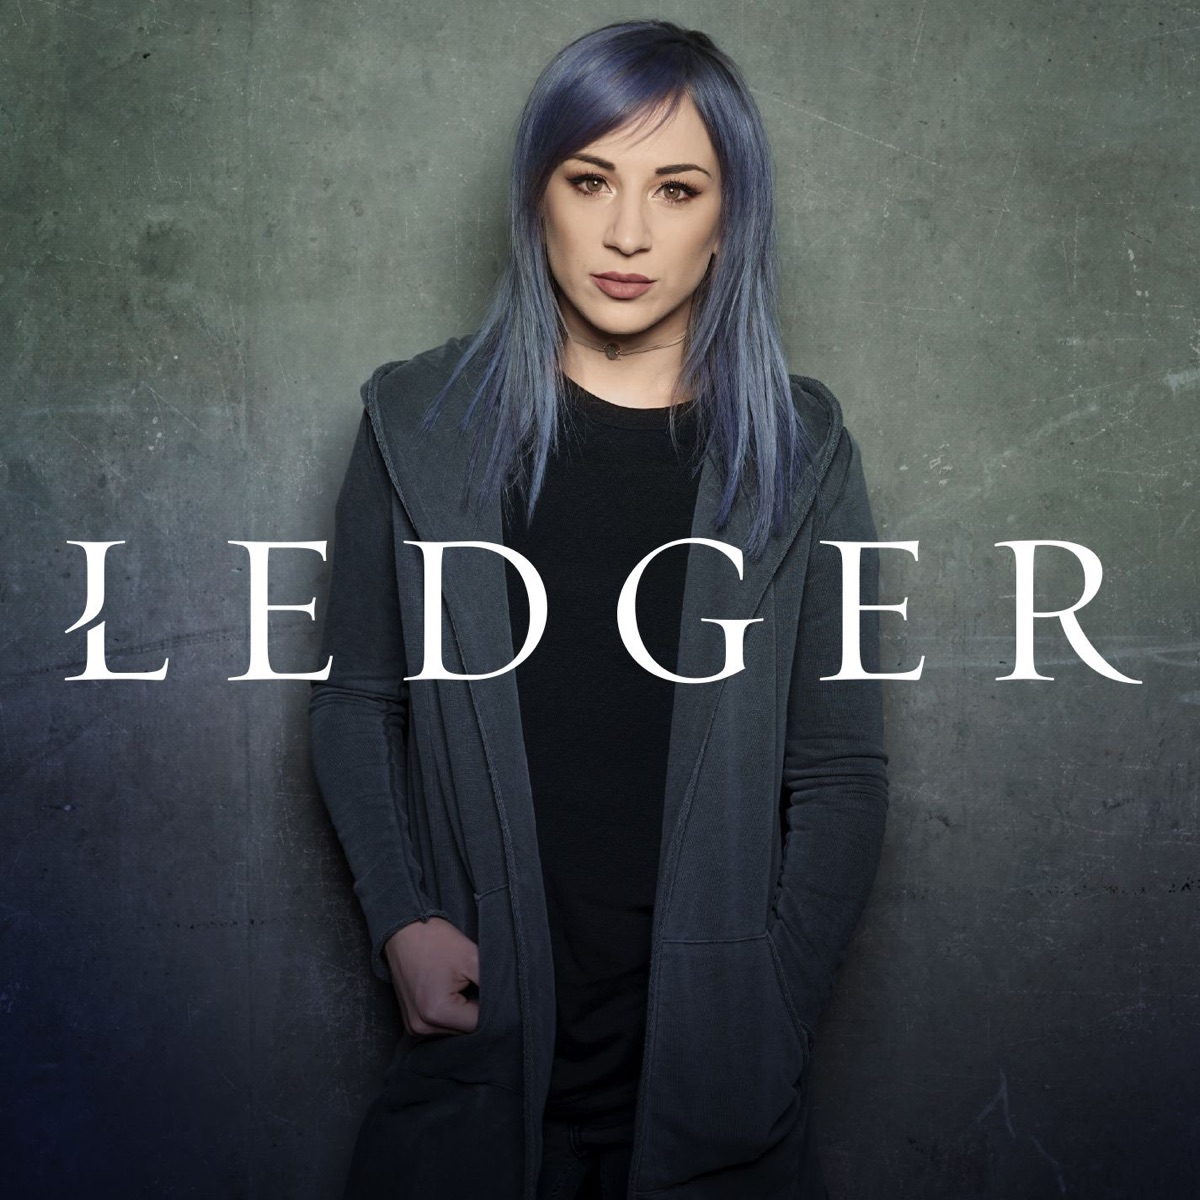 Ledger - EP LEDGER CD cover